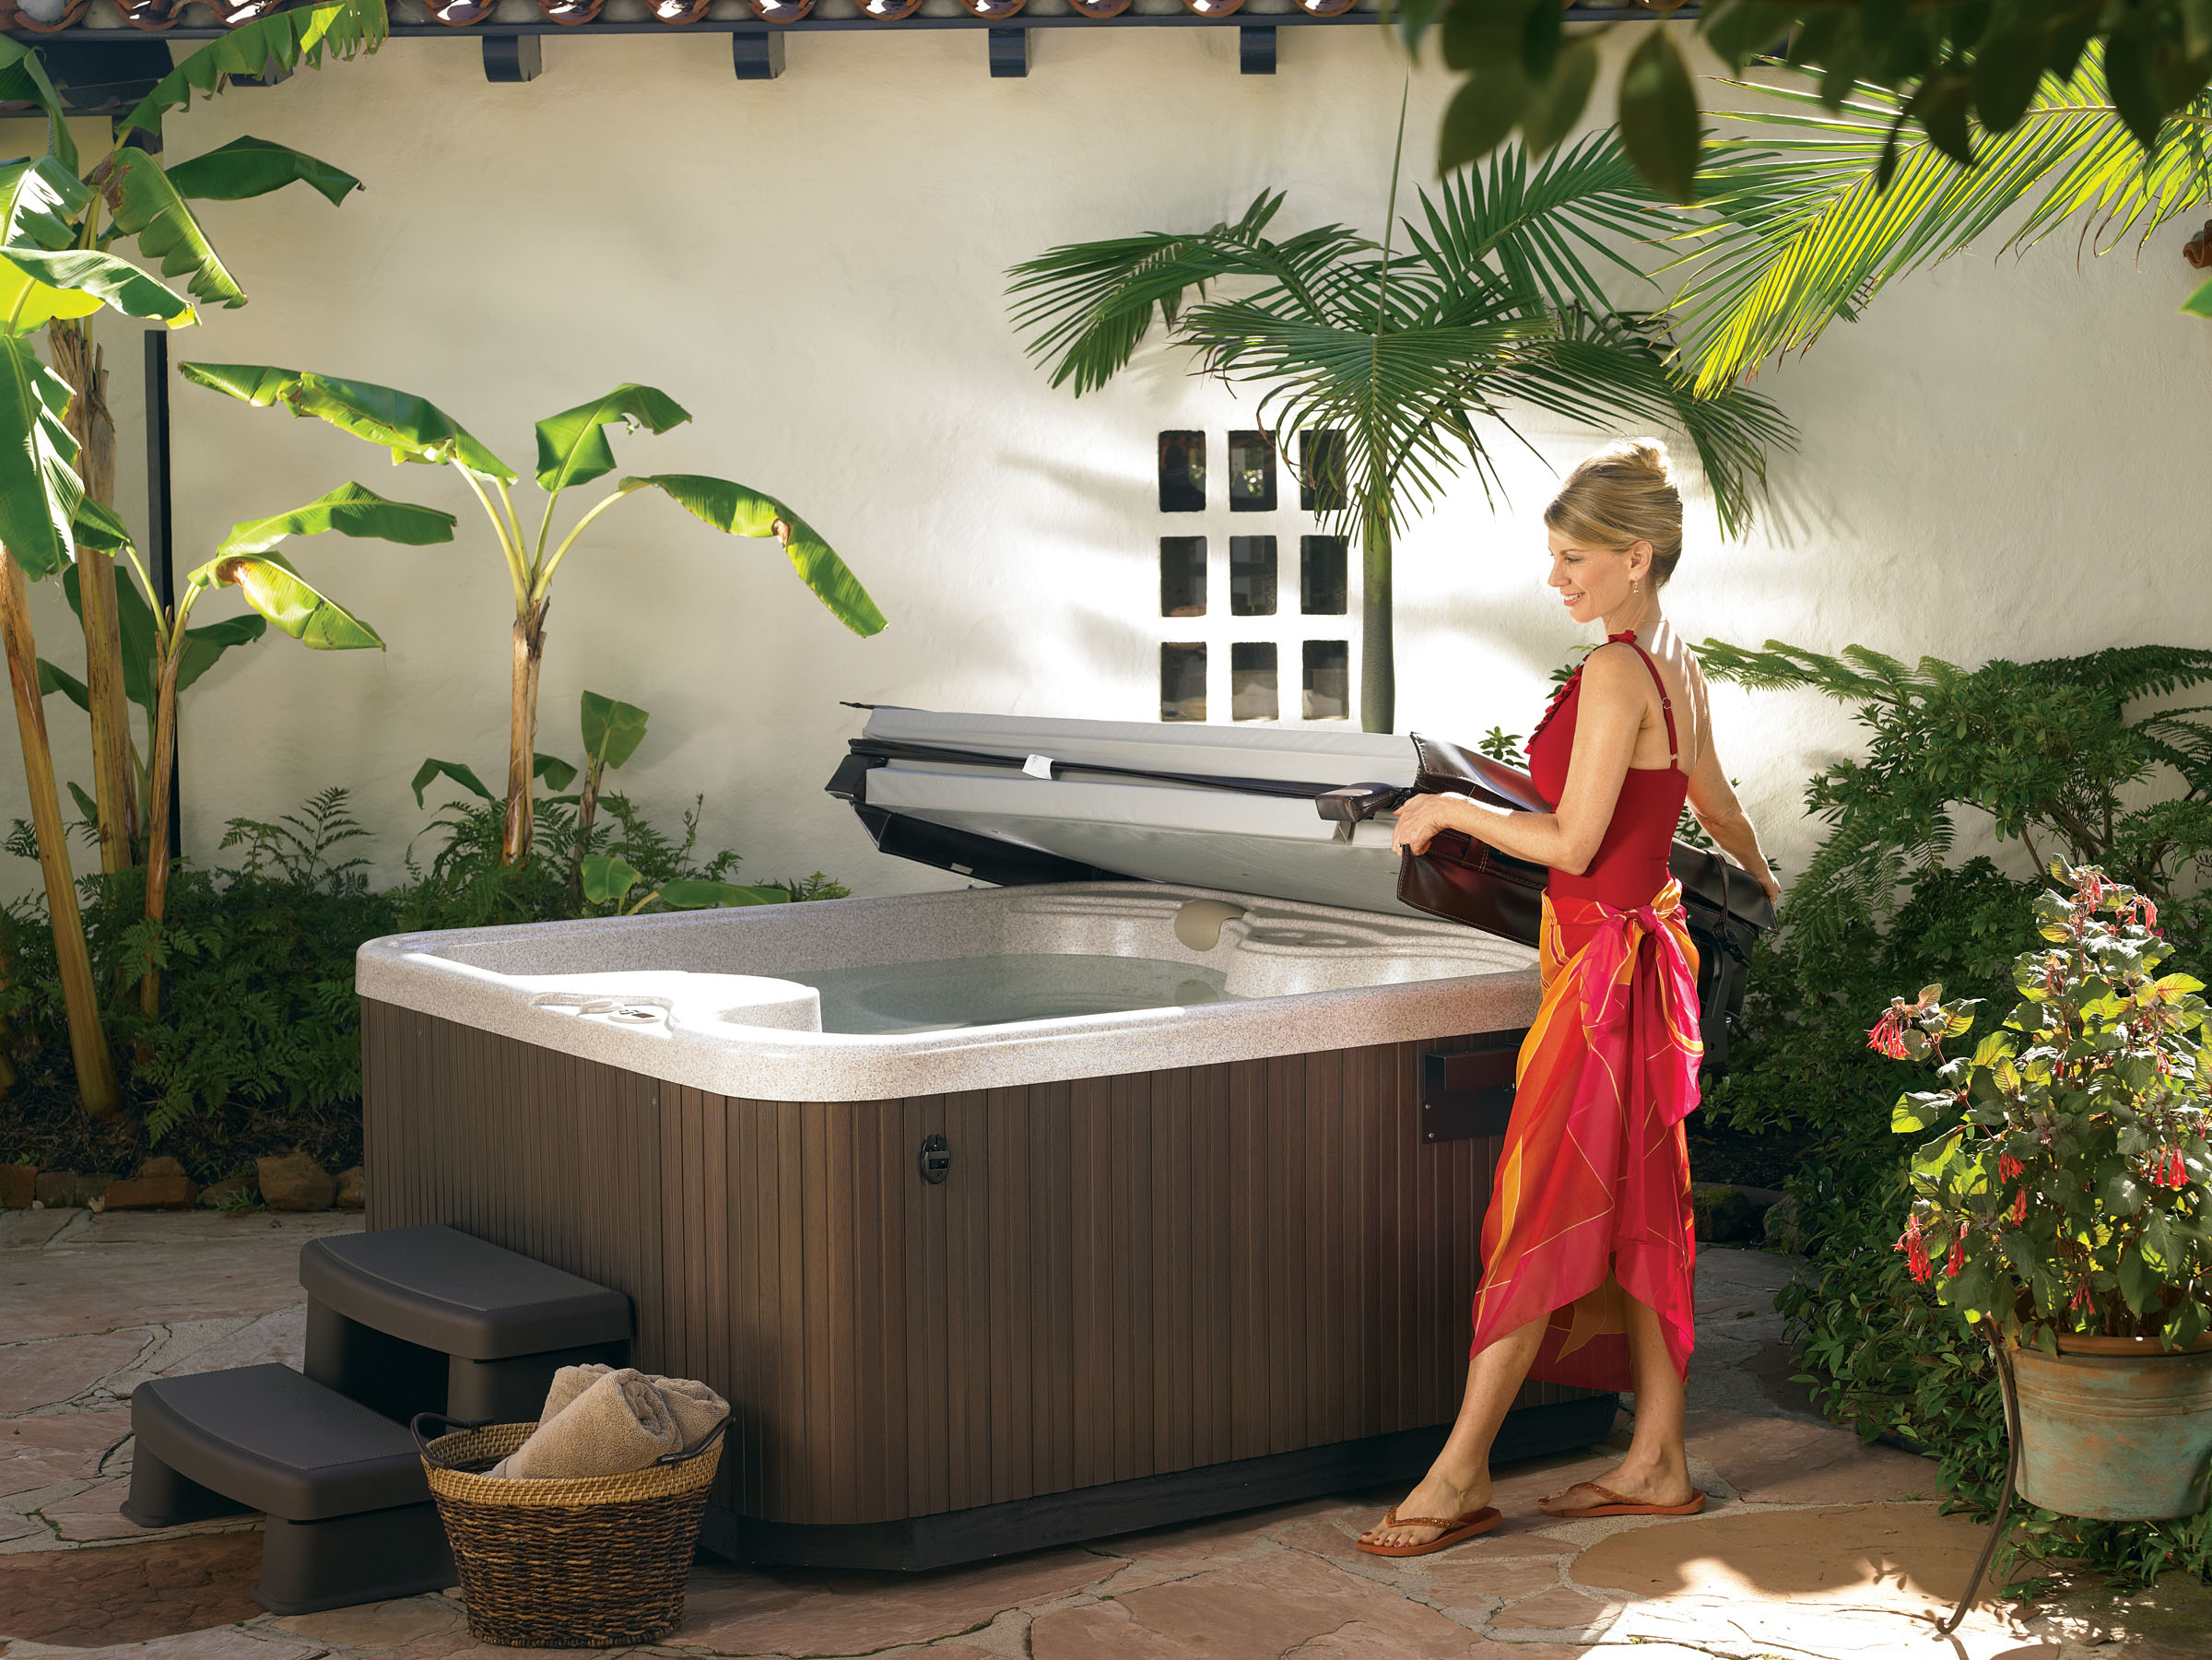 Can a Hot Tub Overheat?